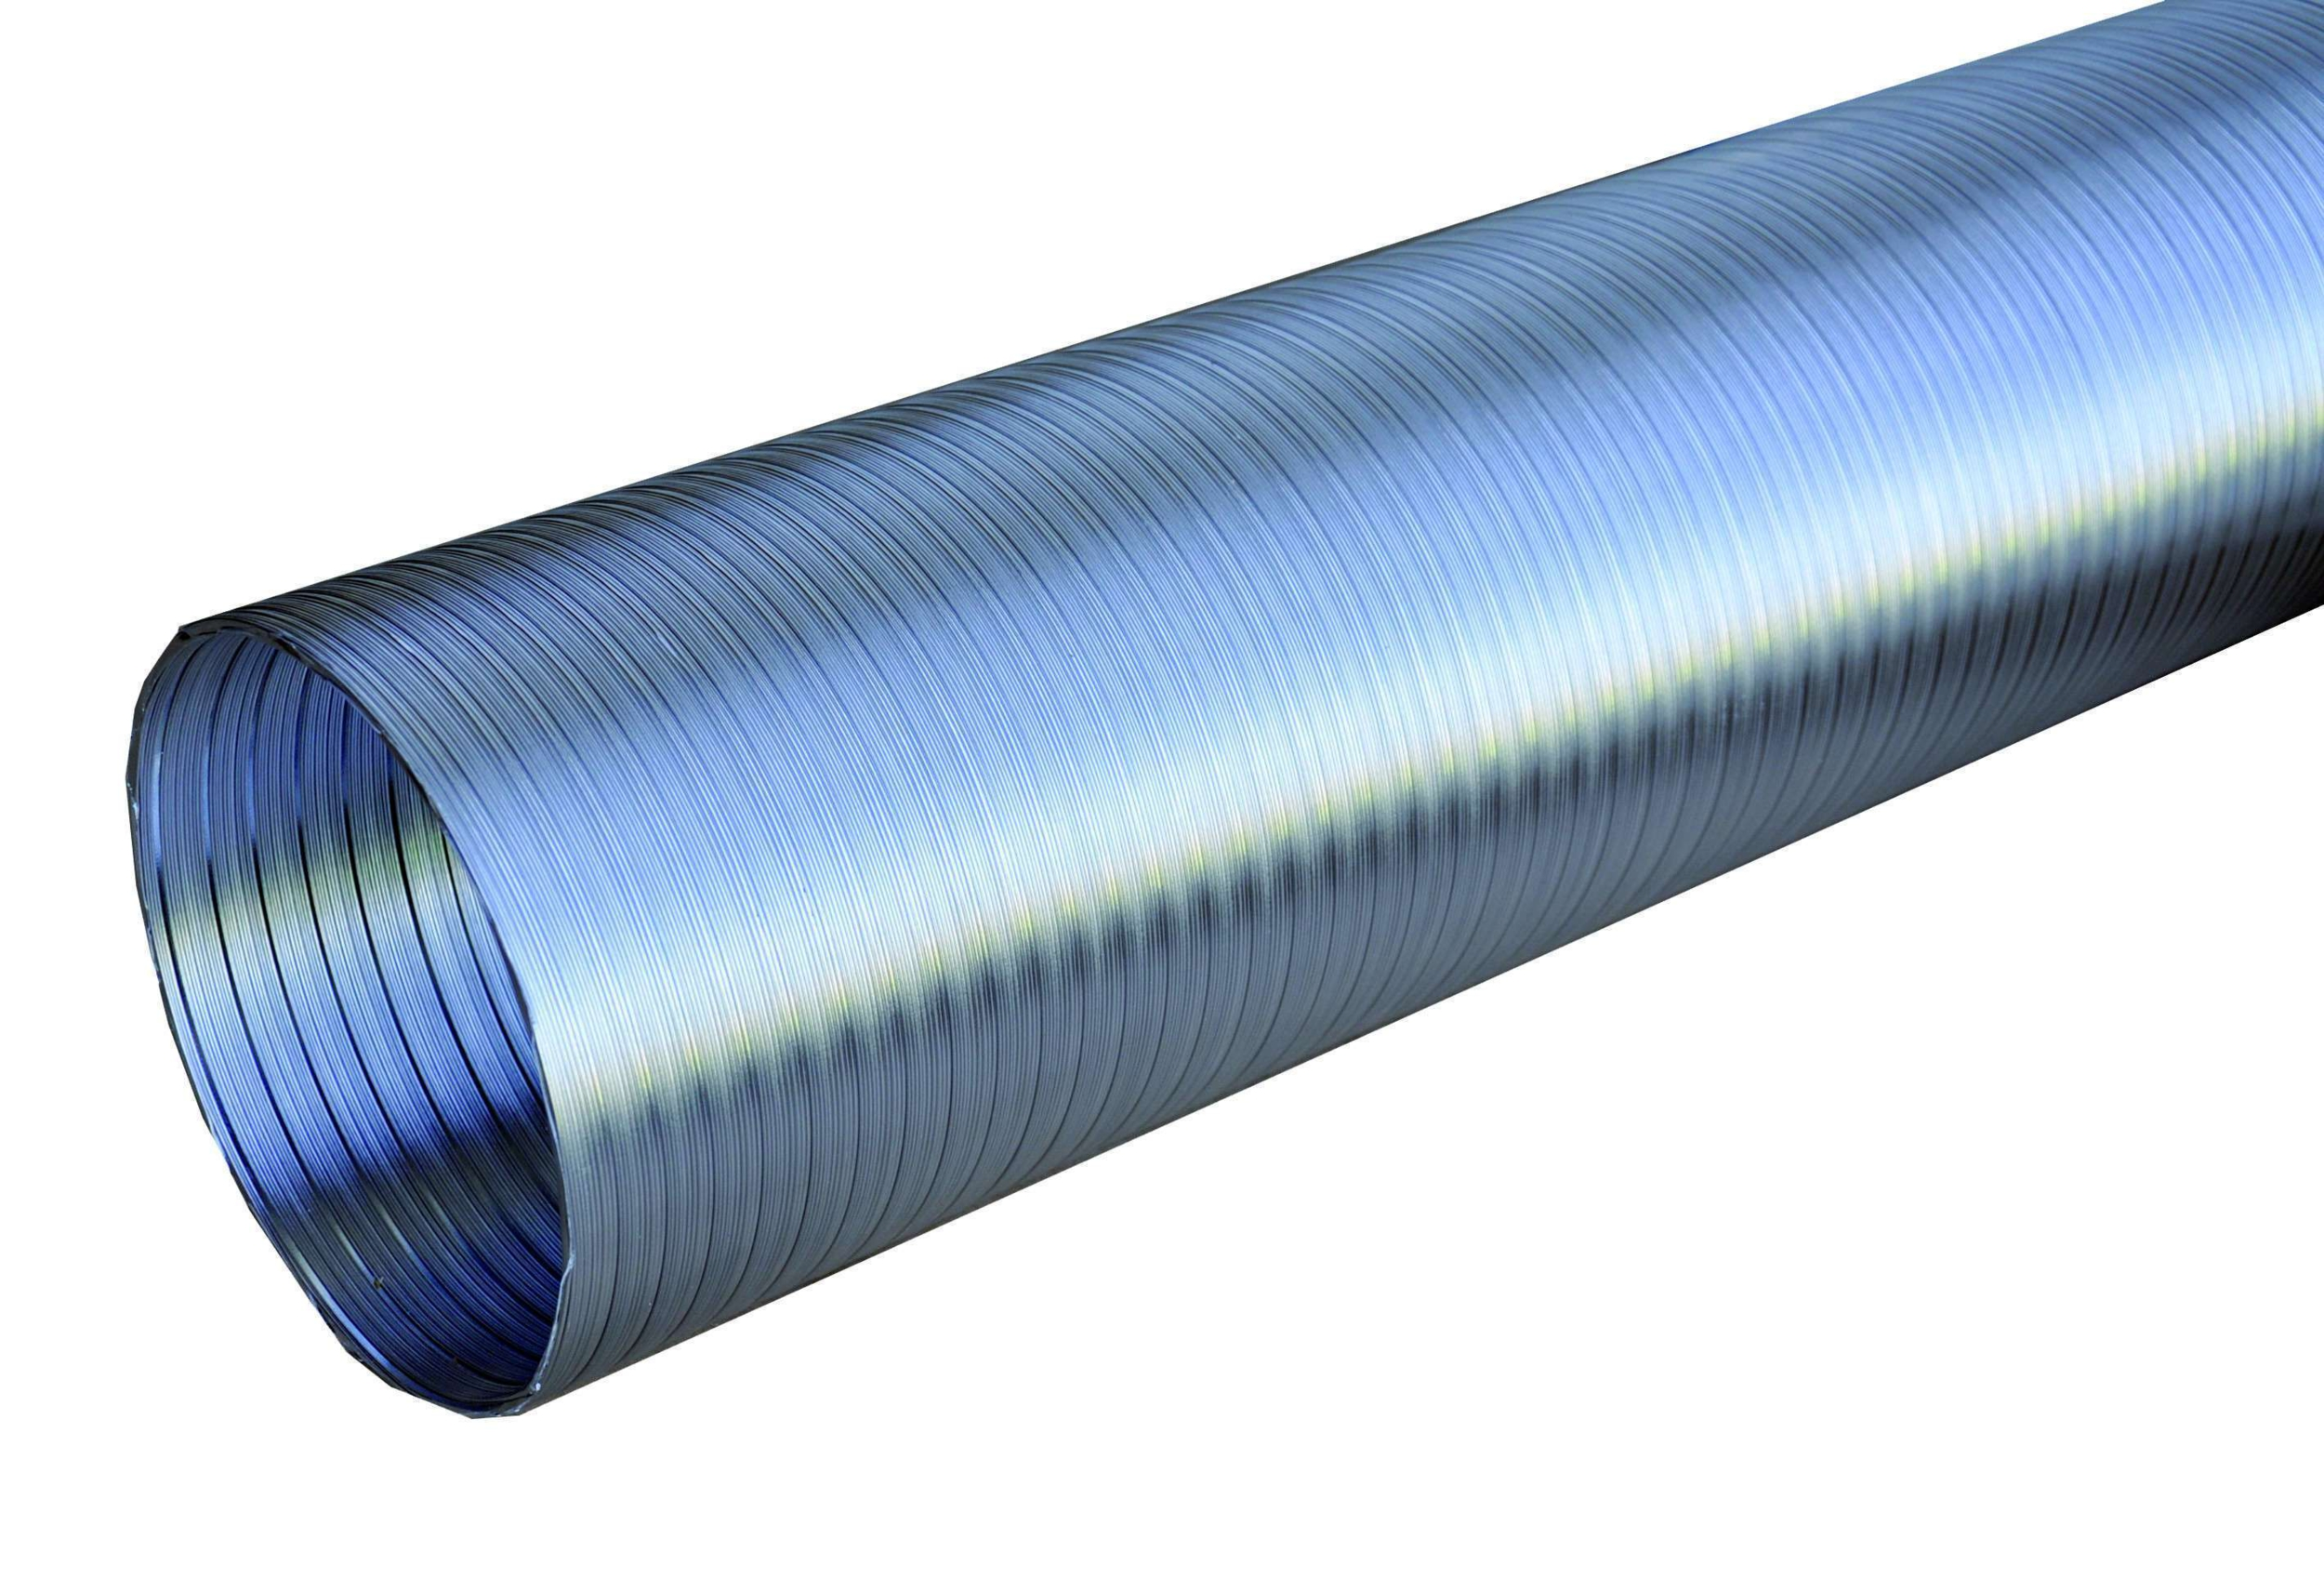 NATHER Conduit semi-rigide en aluminium Ø 125 - Ref 546099